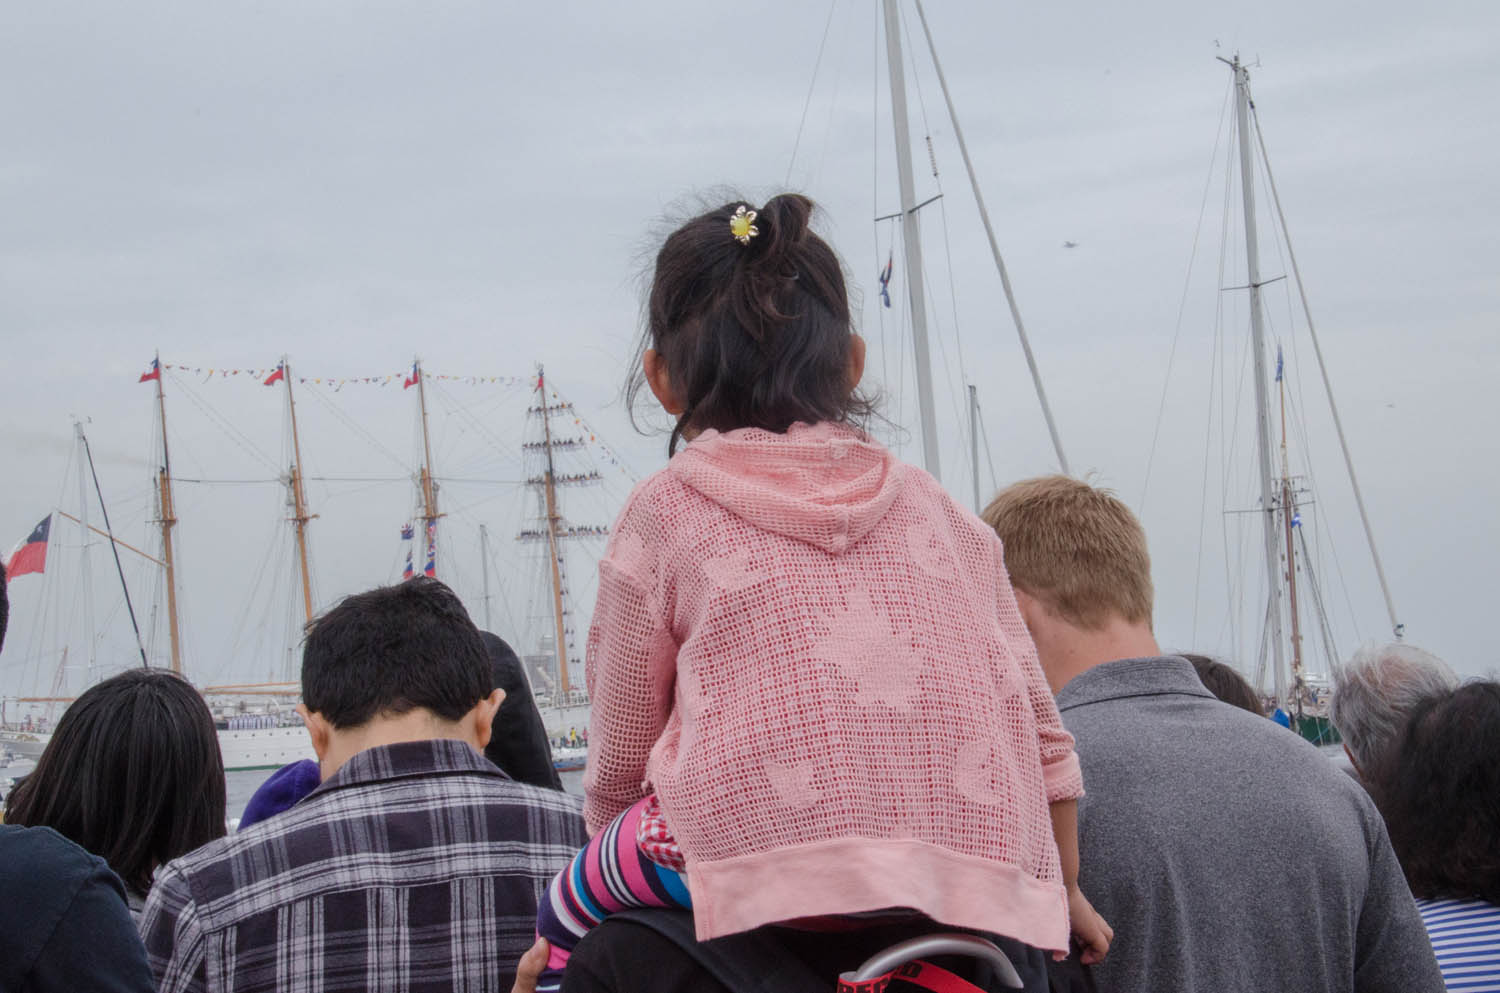 It's been 17 years since Boston Harbor saw the Grand Parade of Sail. (Sharon Brody/WBUR)